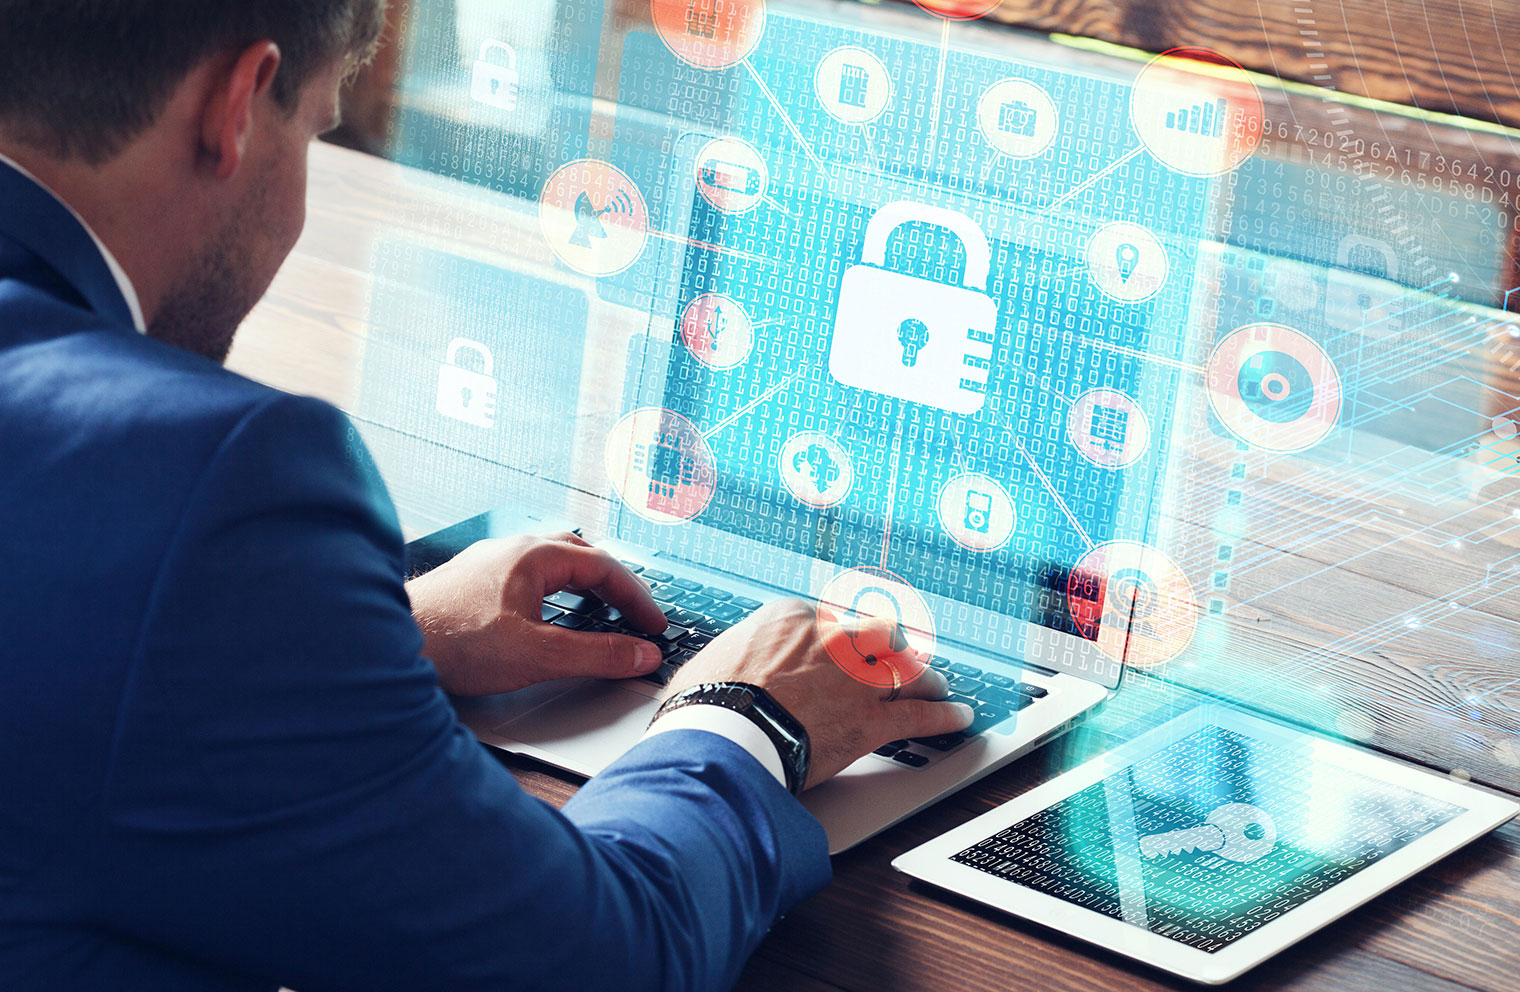 Image of padlock and security graphics overlaying image of man at desk with laptop